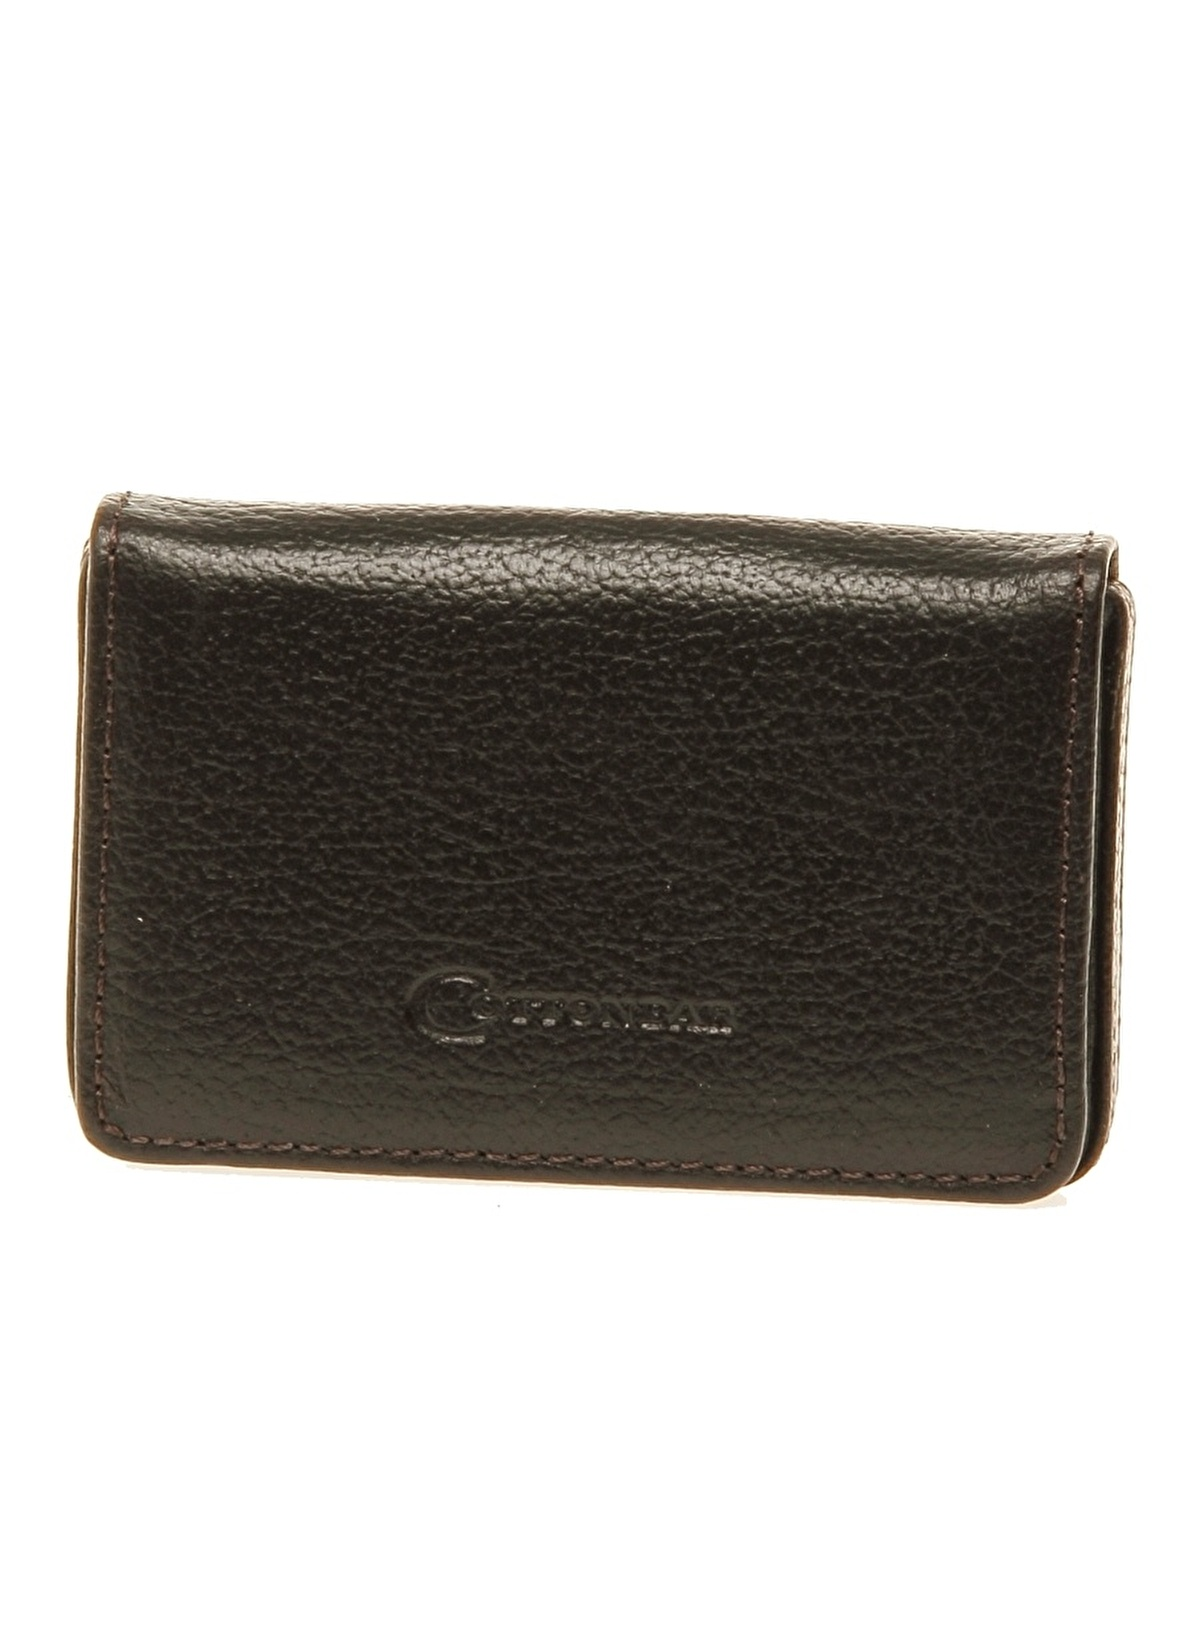 Cotton Bar Clutch – El Çantası 32alt 104 Portfoy – 69.95 TL